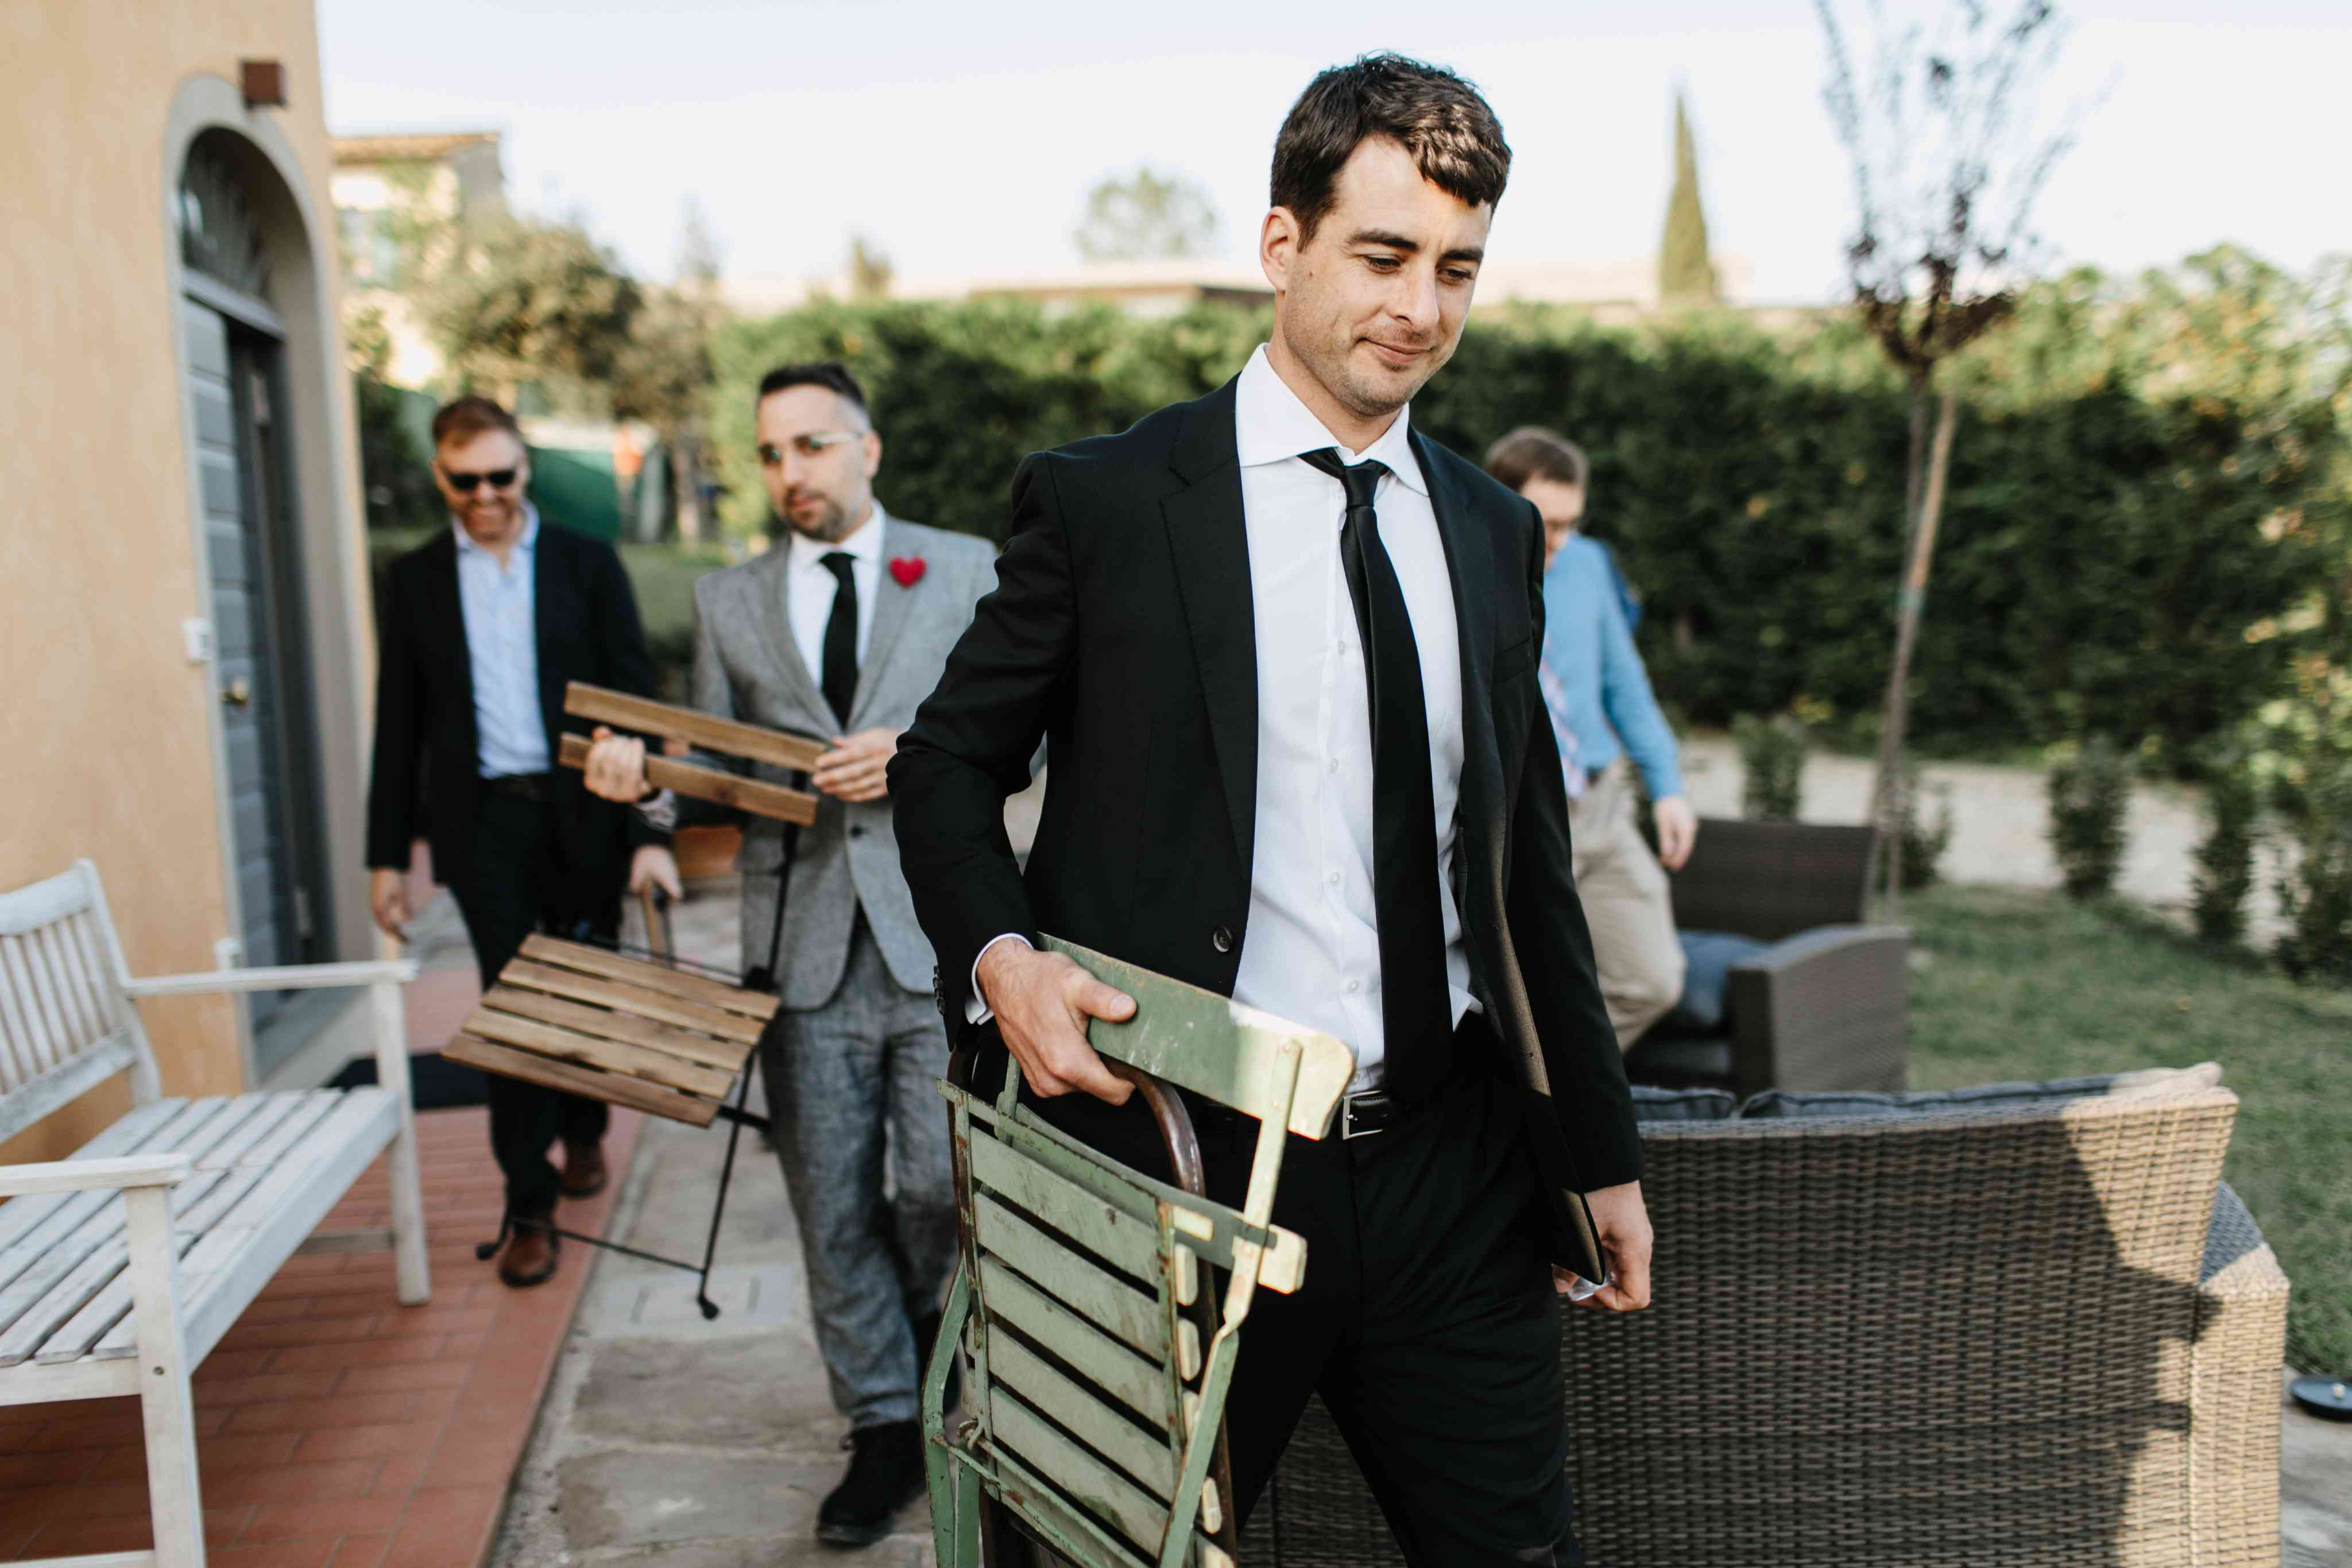 <p>wedding guests carrying wedding chairs</p><br><br>